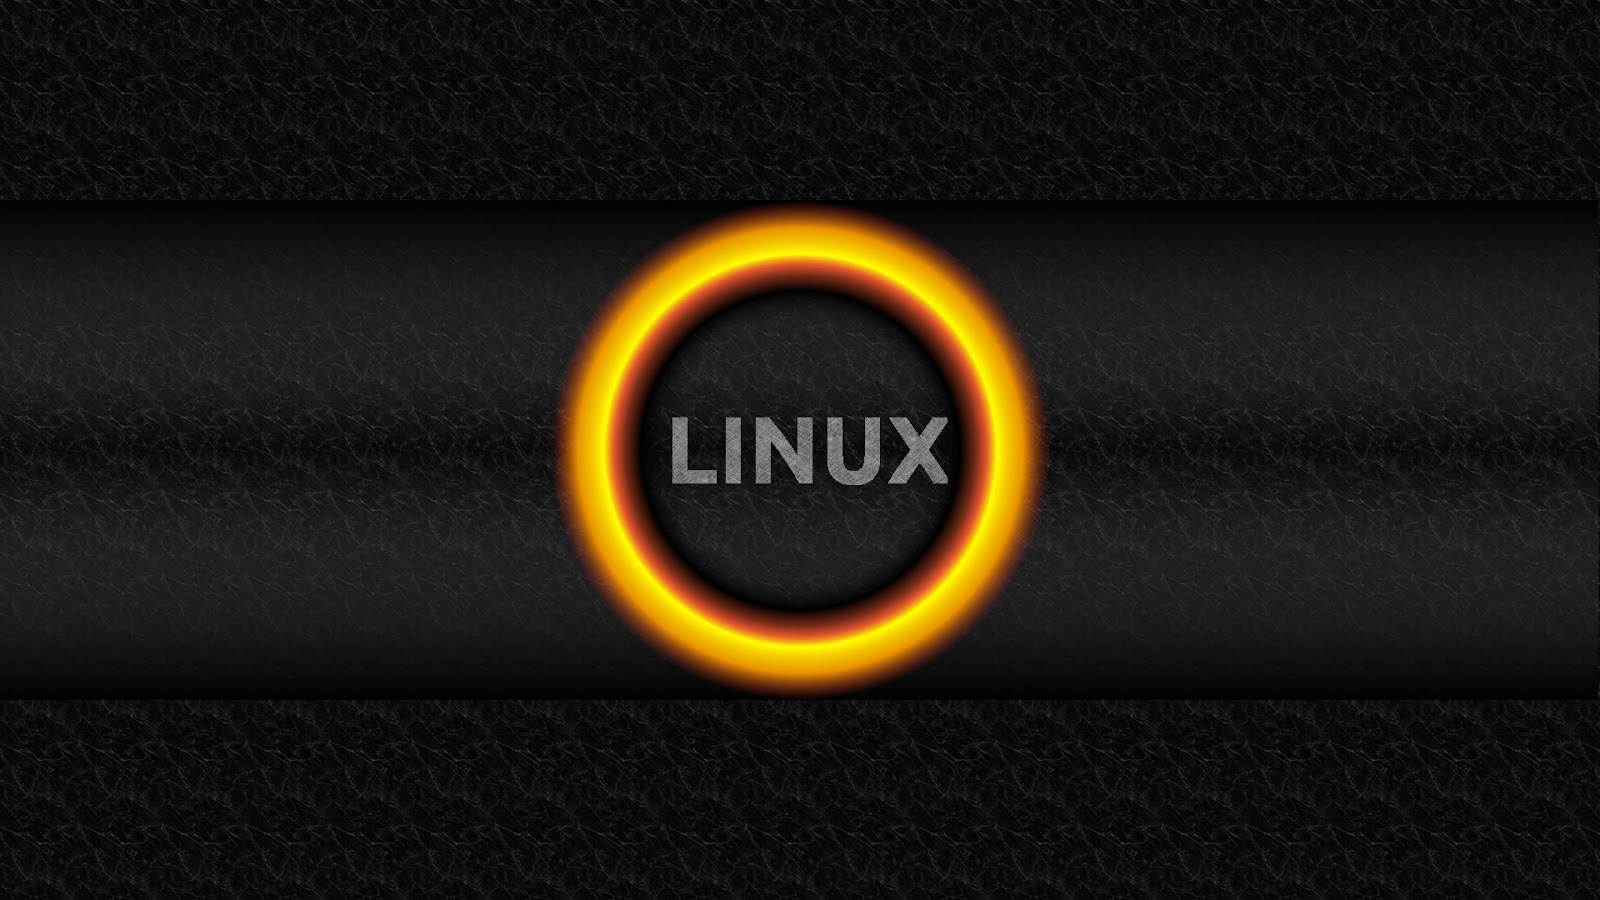 1600x900px hd linux wallpapers wallpapersafari linux wallpaper fullscreen hd 5316 wallpaper walldiskpaper 1600x900 thecheapjerseys Gallery